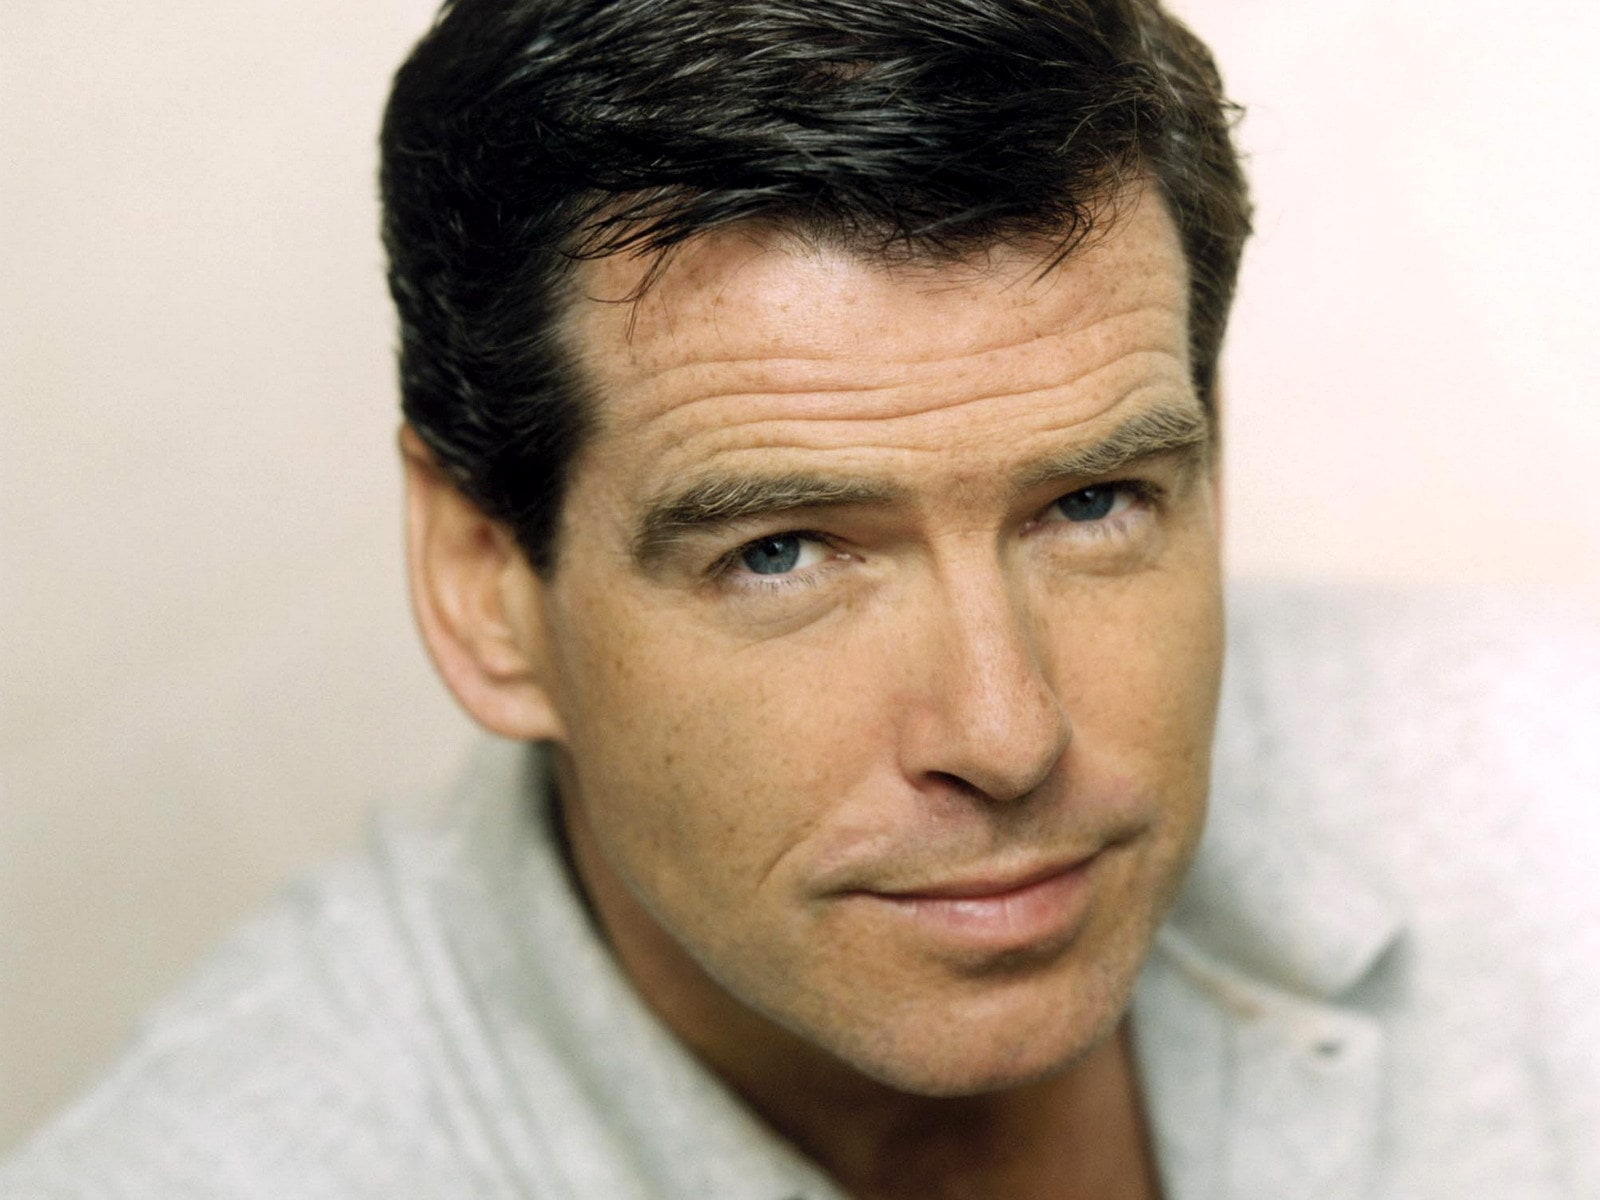 Pierce Brosnan Wallpapers hd